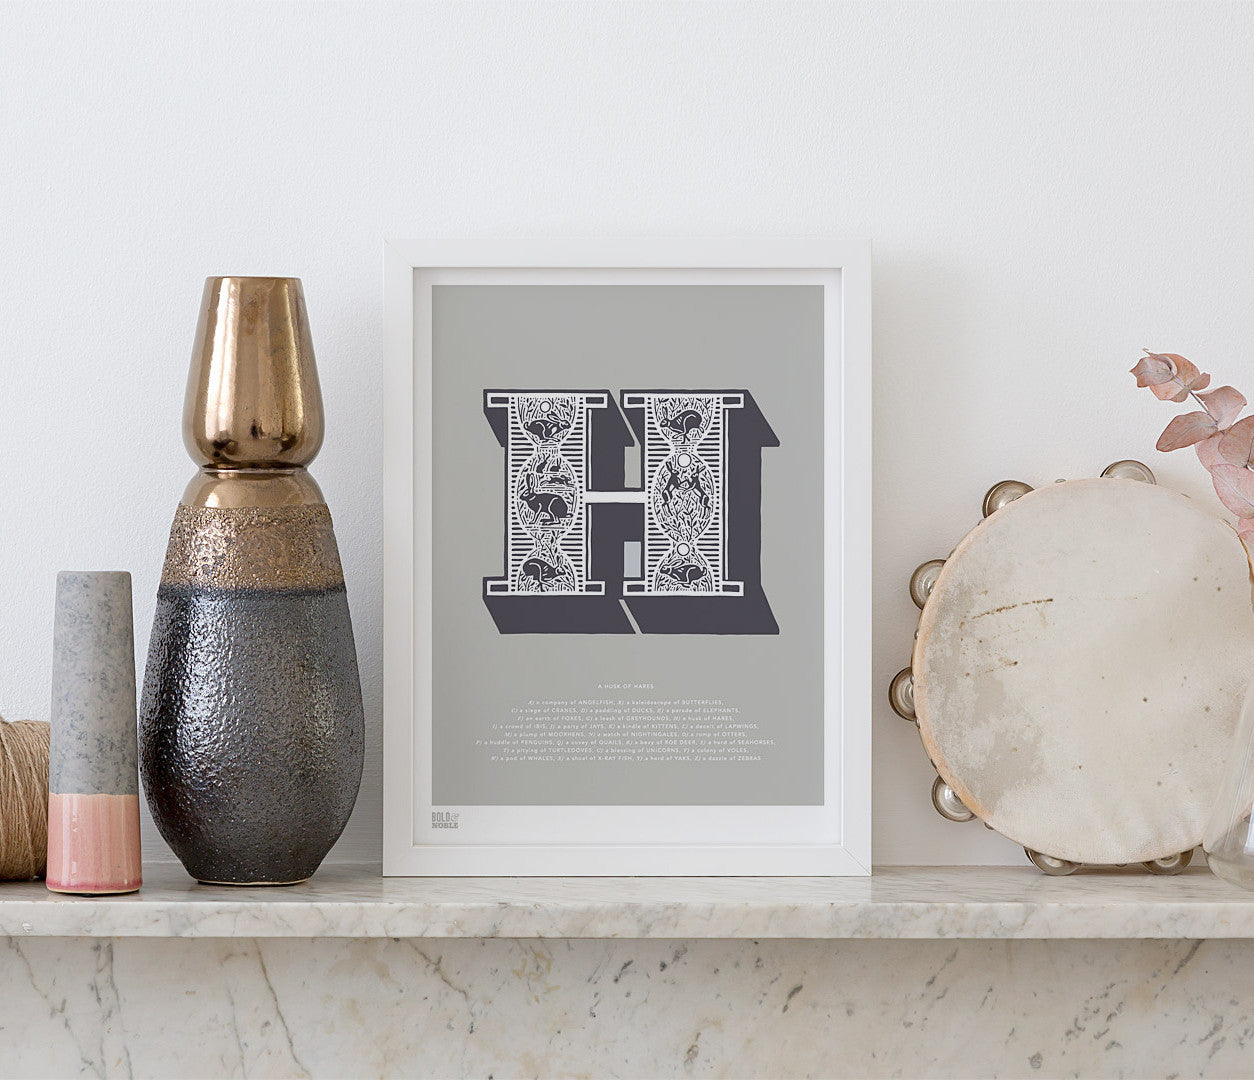 Pictures and Wall Art, Screen Printed Illustrated Letter H design in putty grey